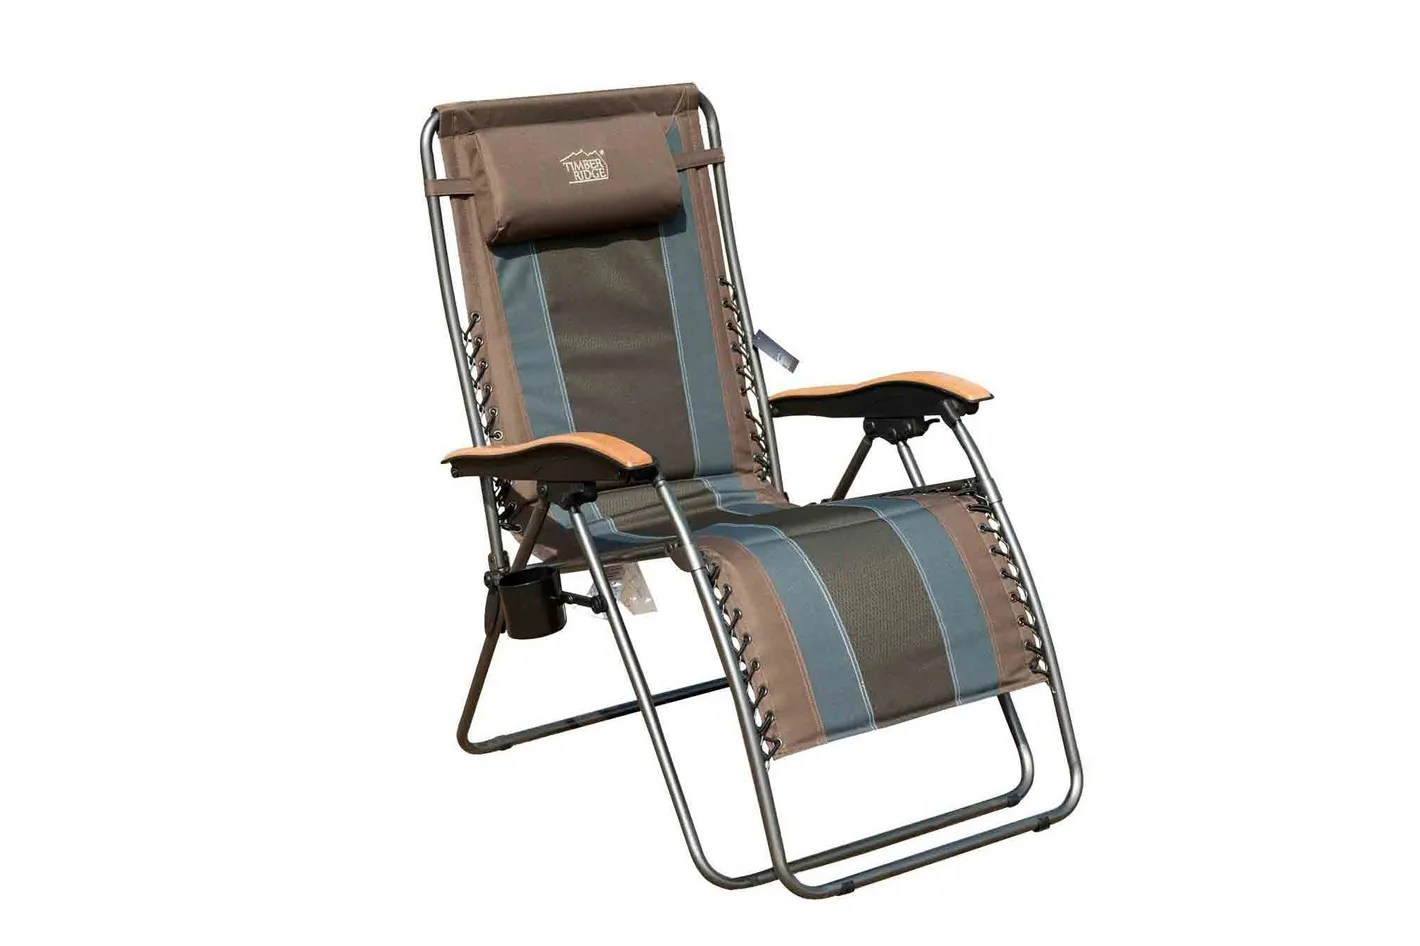 best beach chair reviews round swivel lounge the 20 chairs 2018